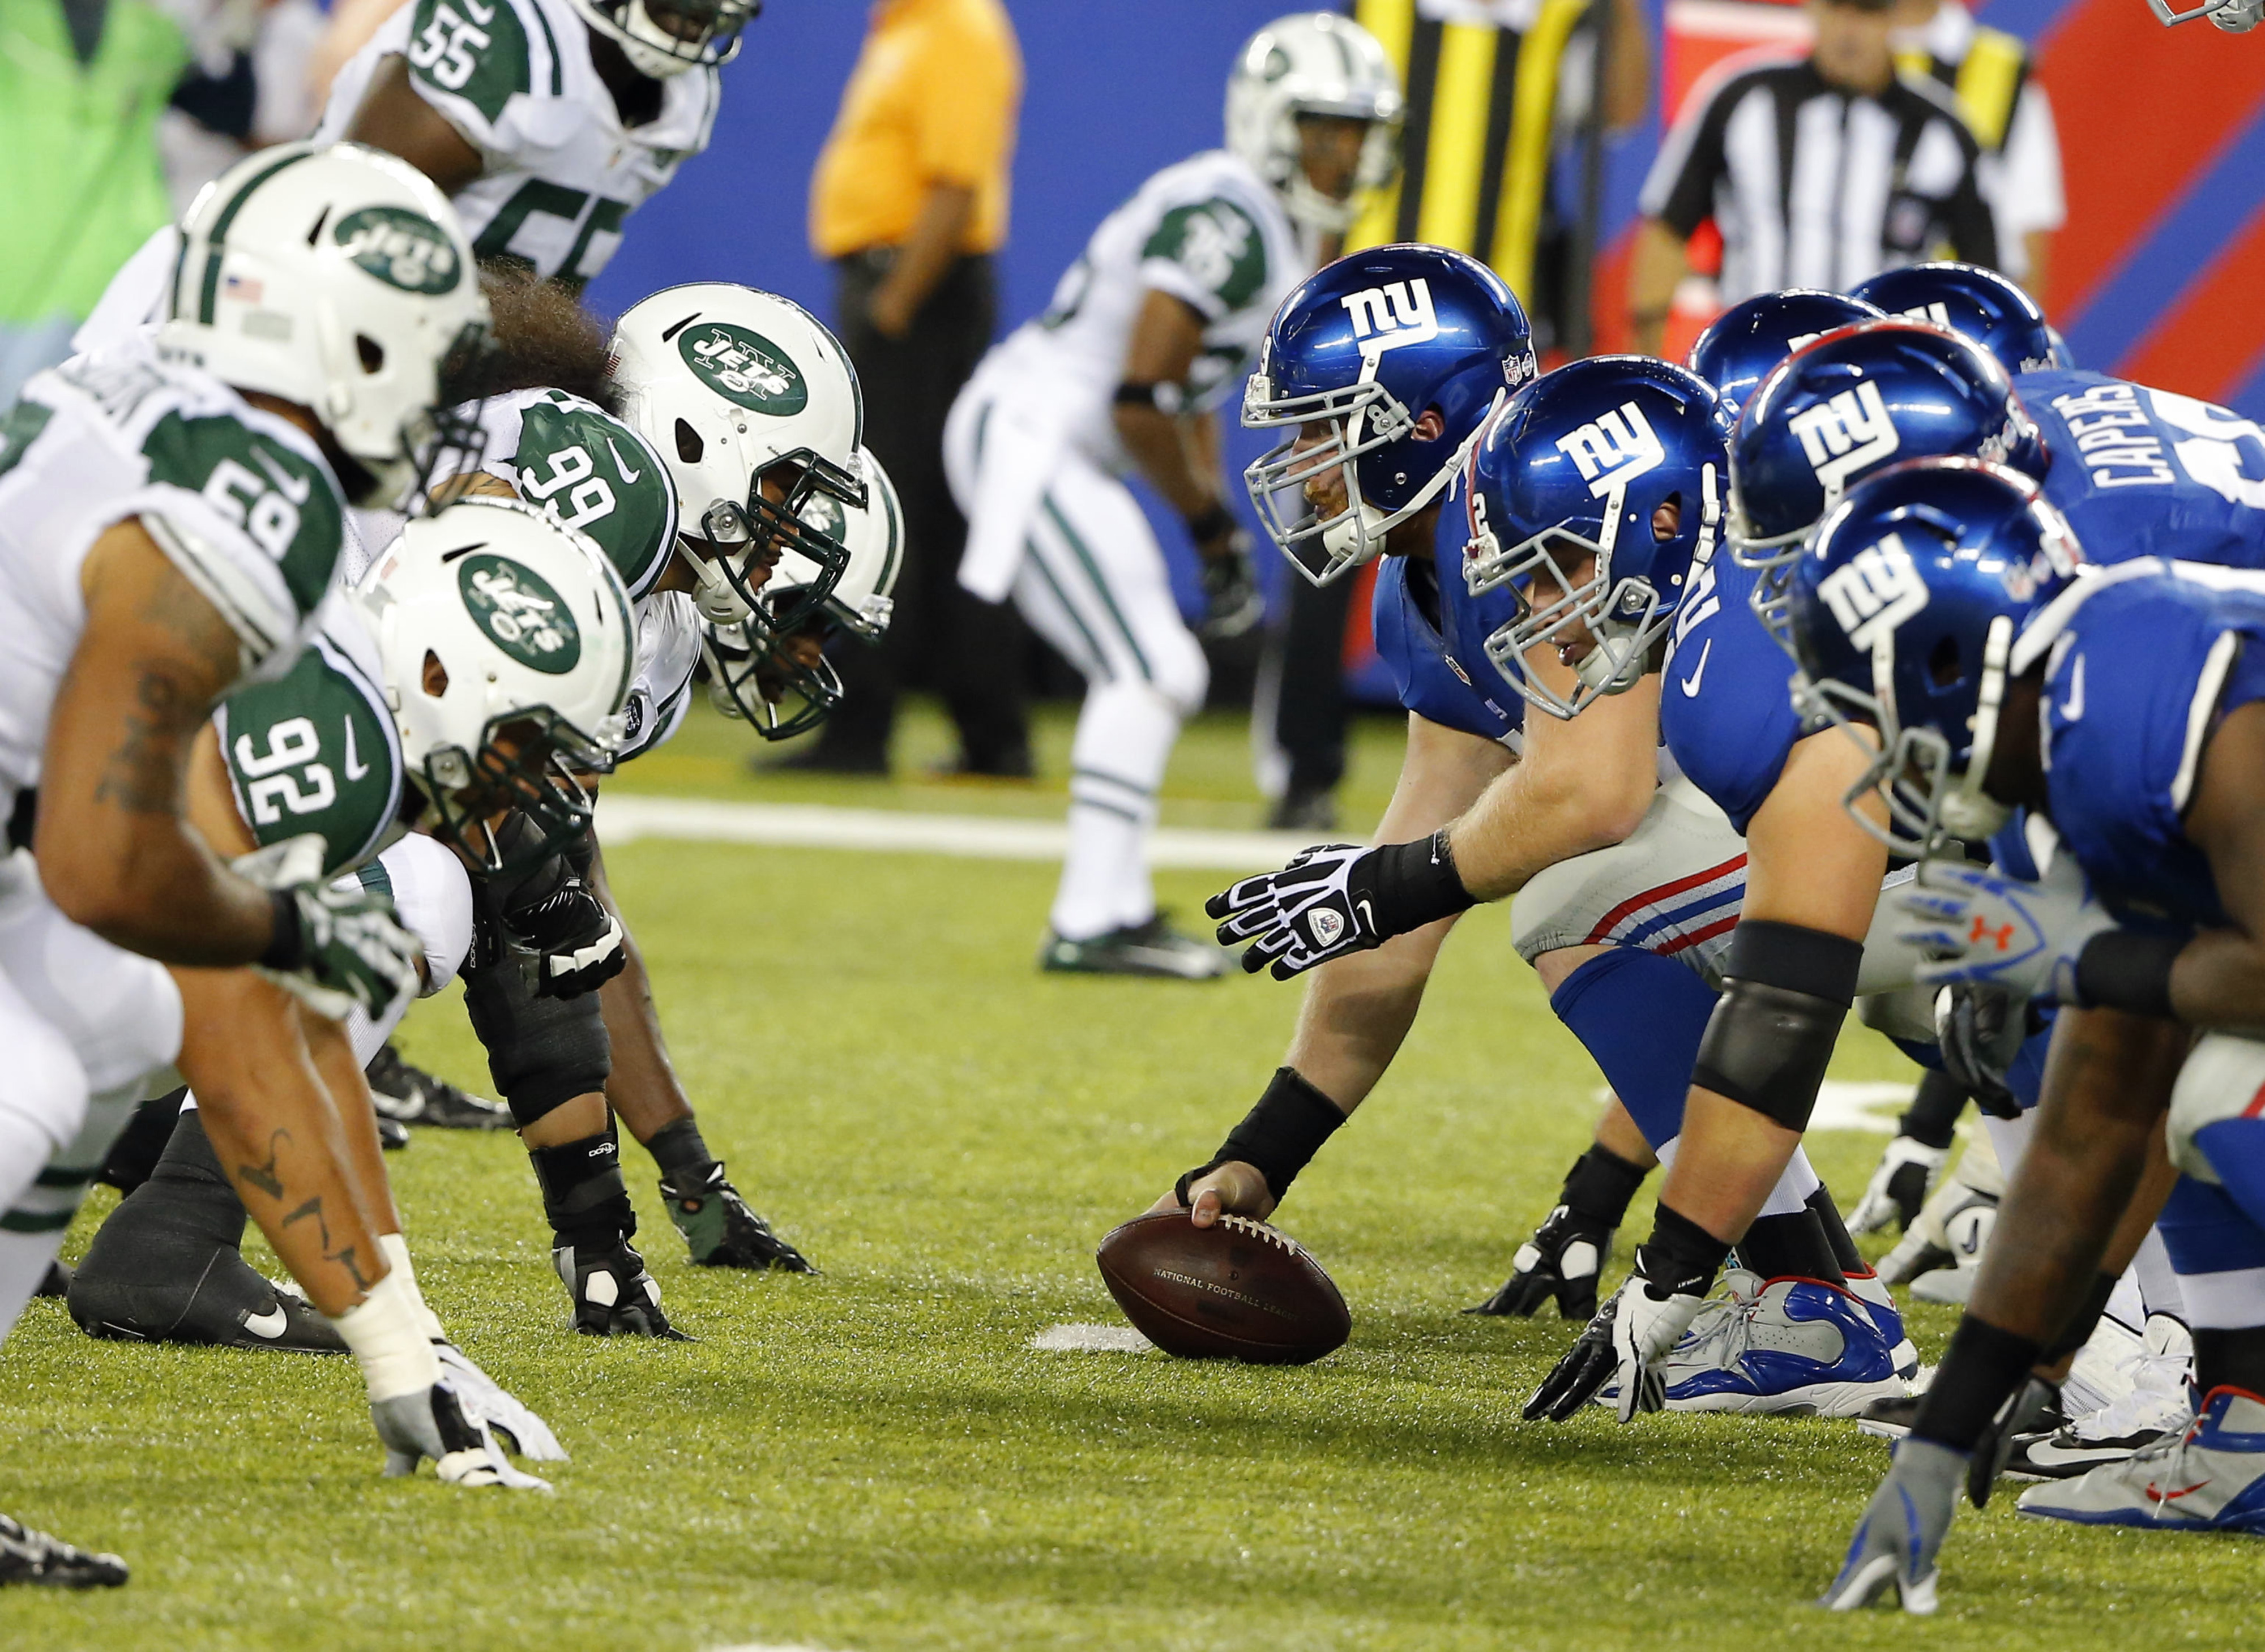 Will the offensive line be shuffled again?